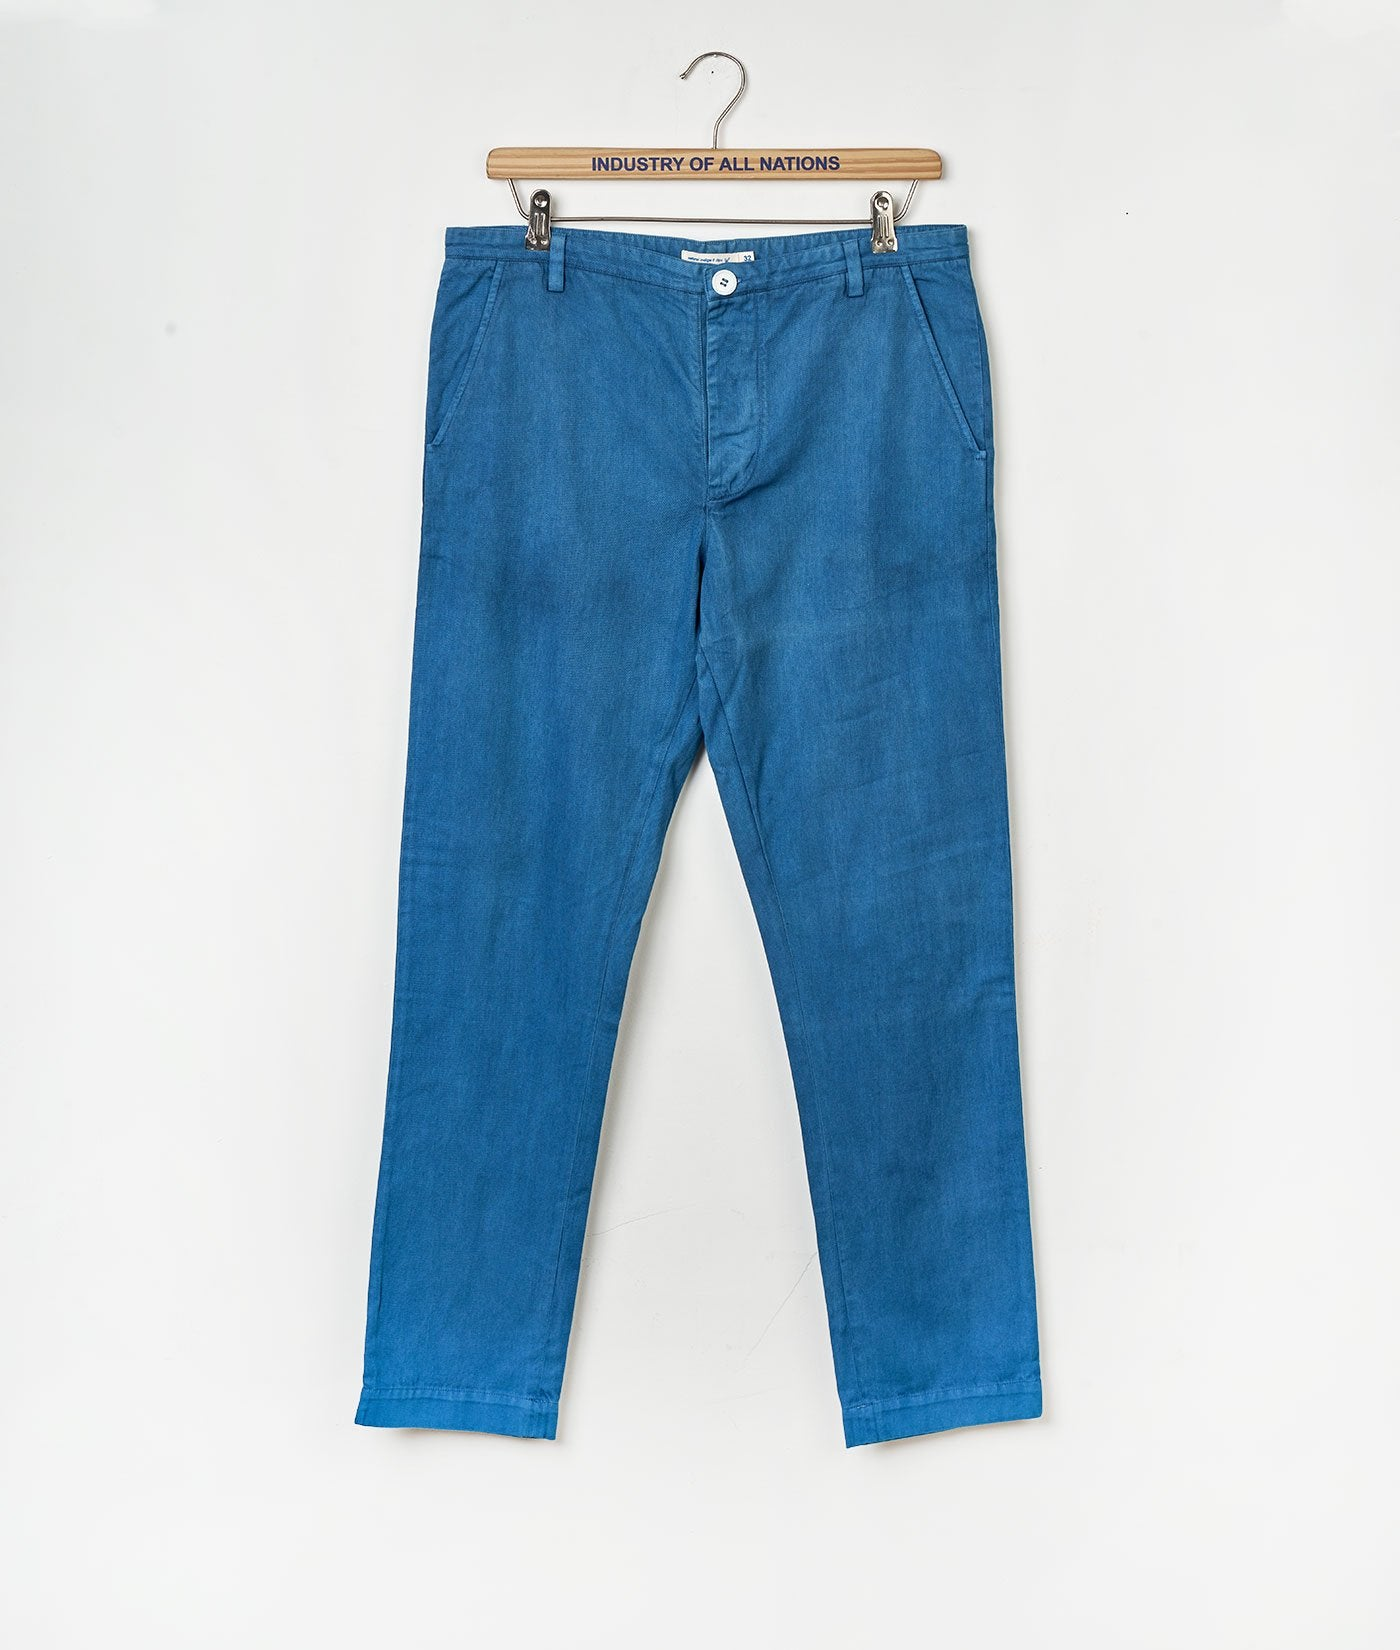 Industry of All Nations Organic Cotton Chino Pants Indigo 6